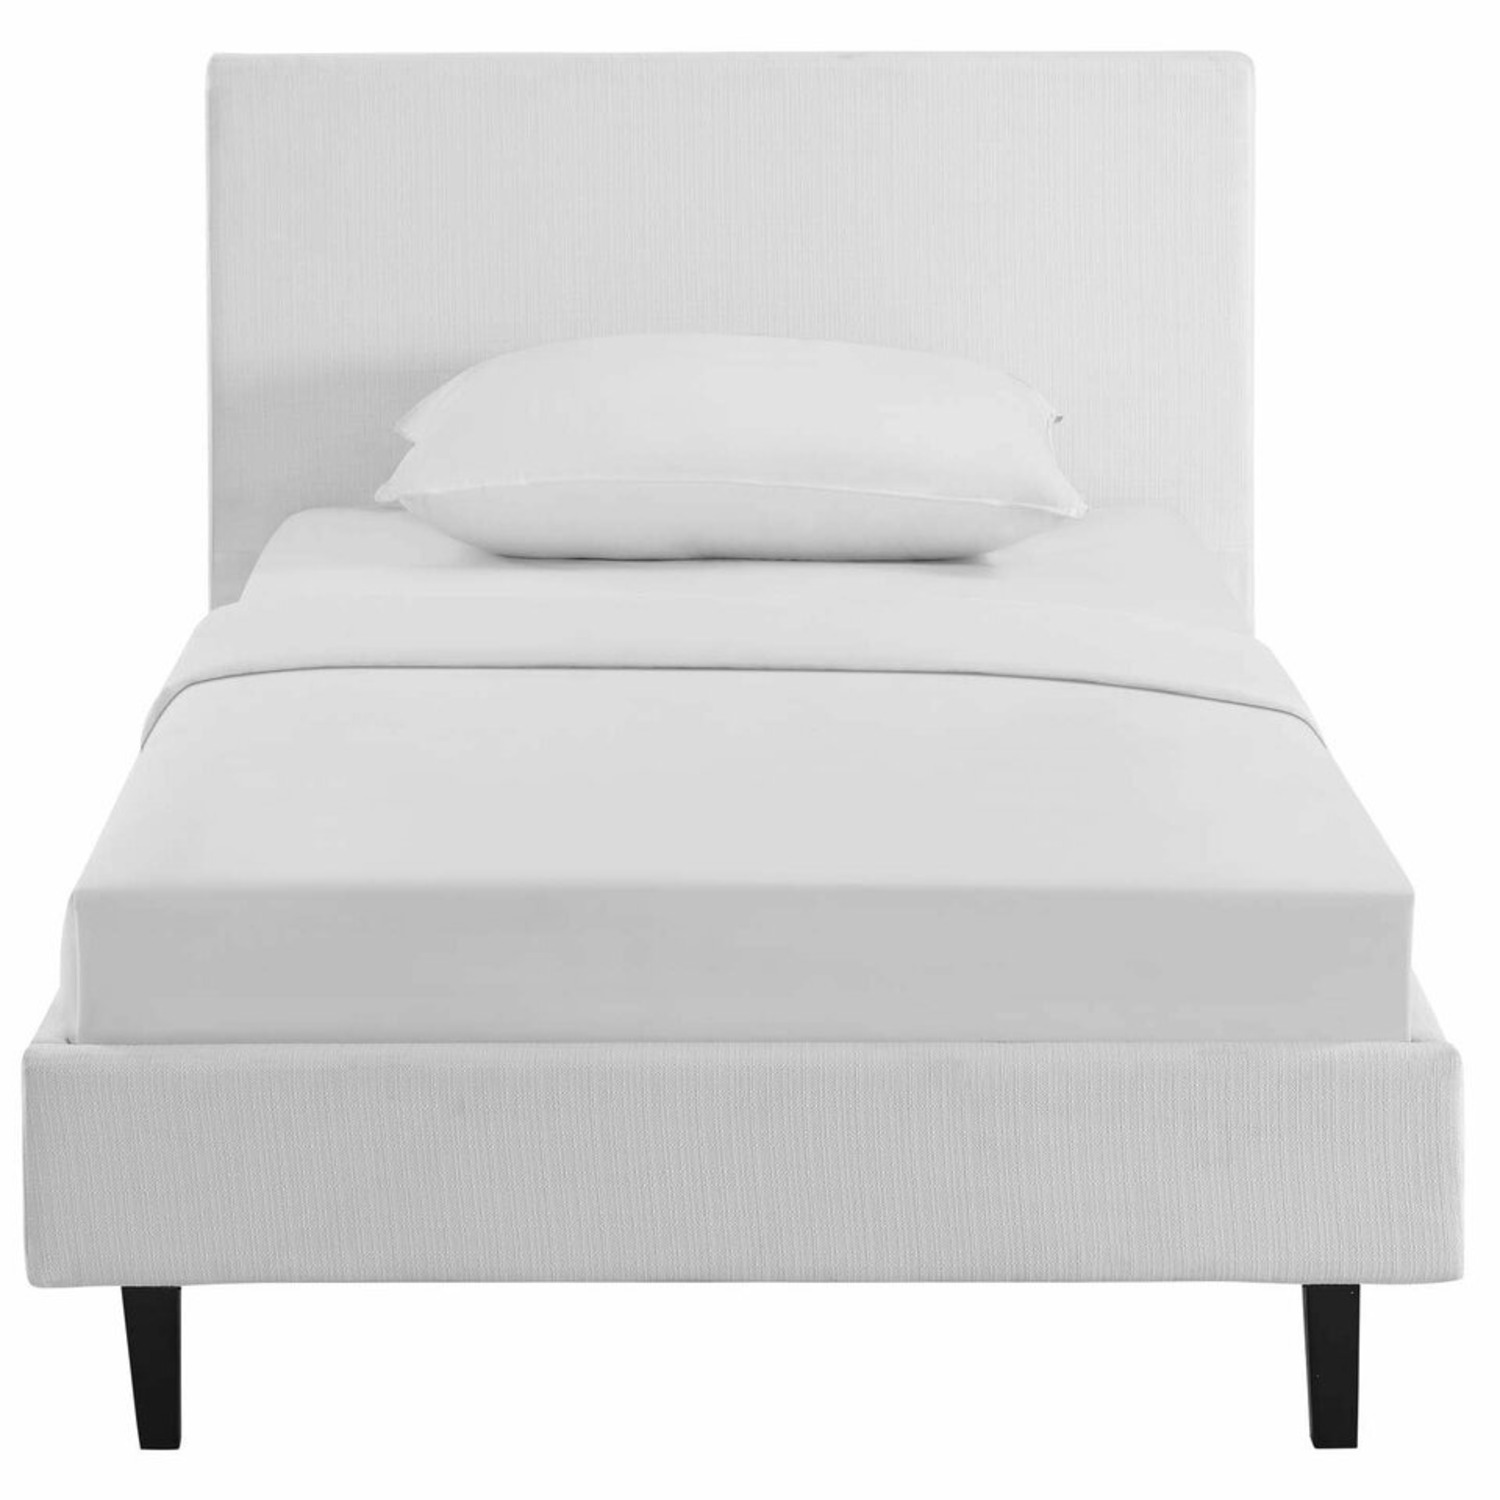 Twin Bed In White Fabric Upholstery Finish - image-1